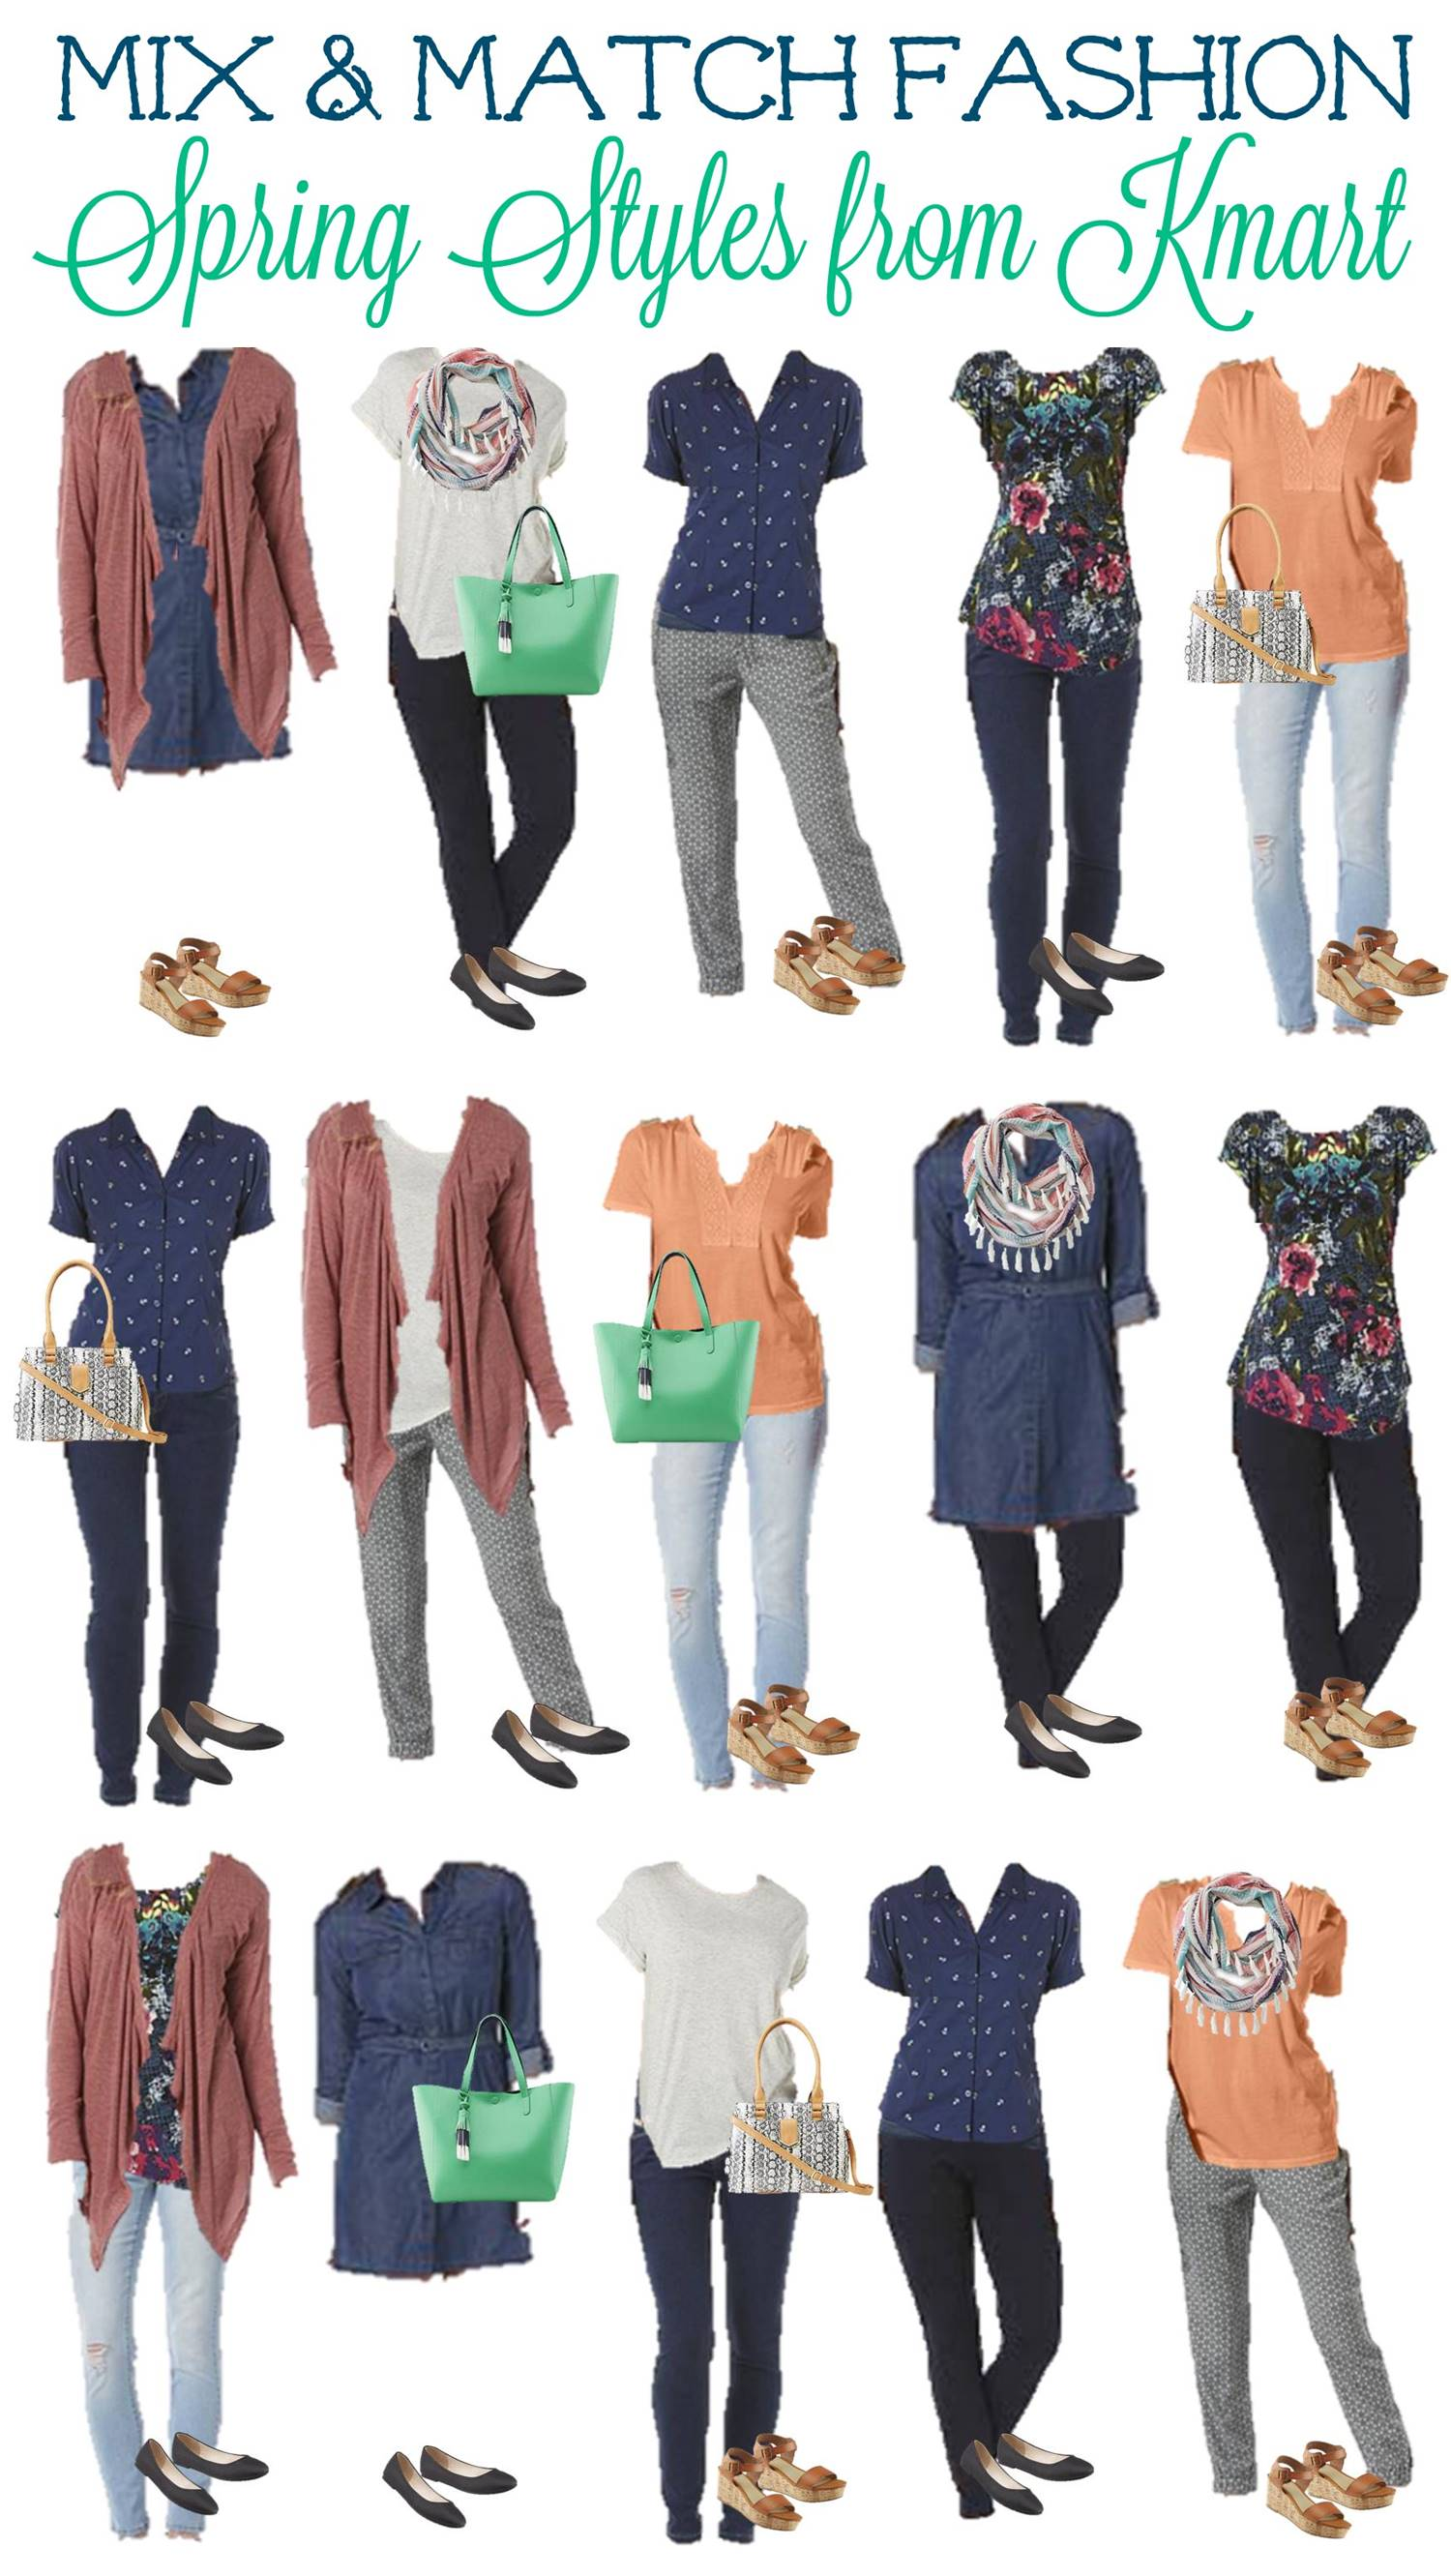 Mix and Match Fashion Spring Styles from Kmart